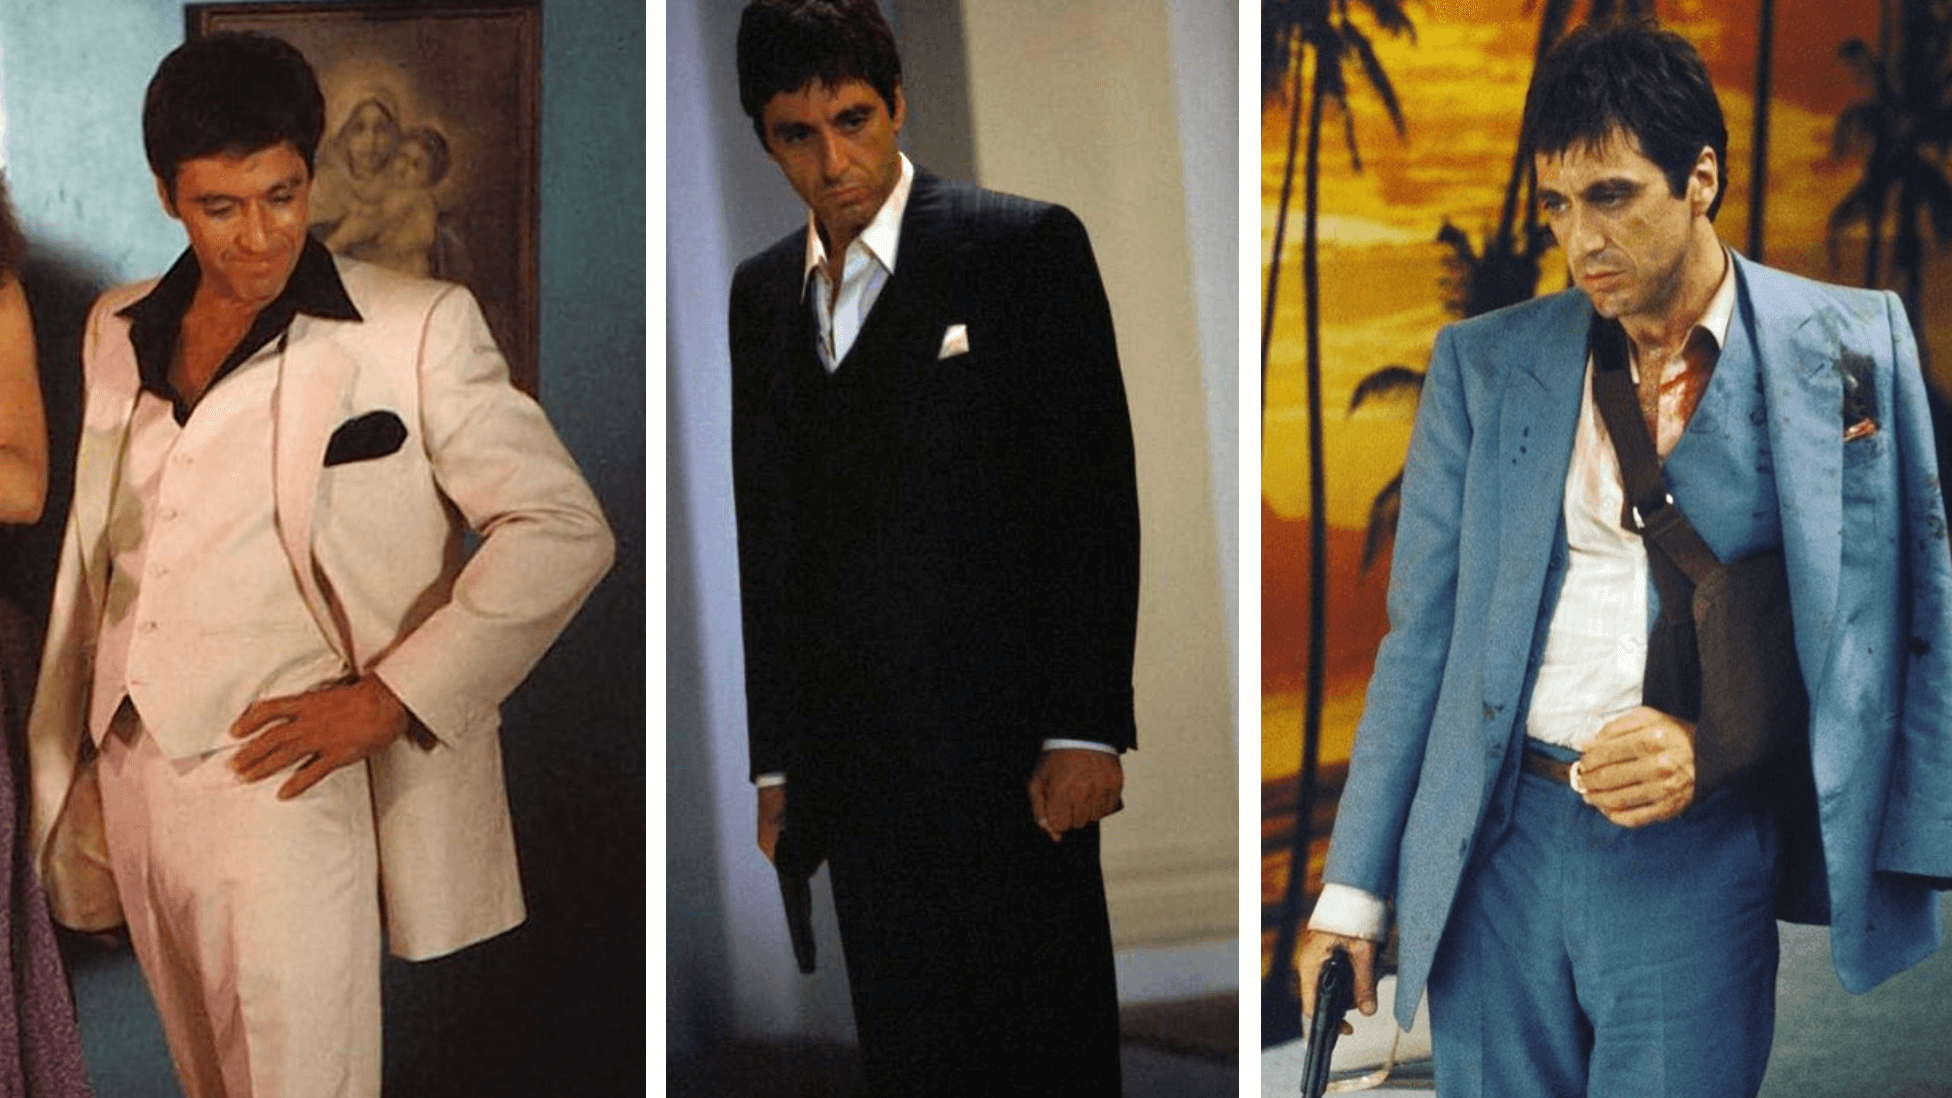 suits-on-film-scarface